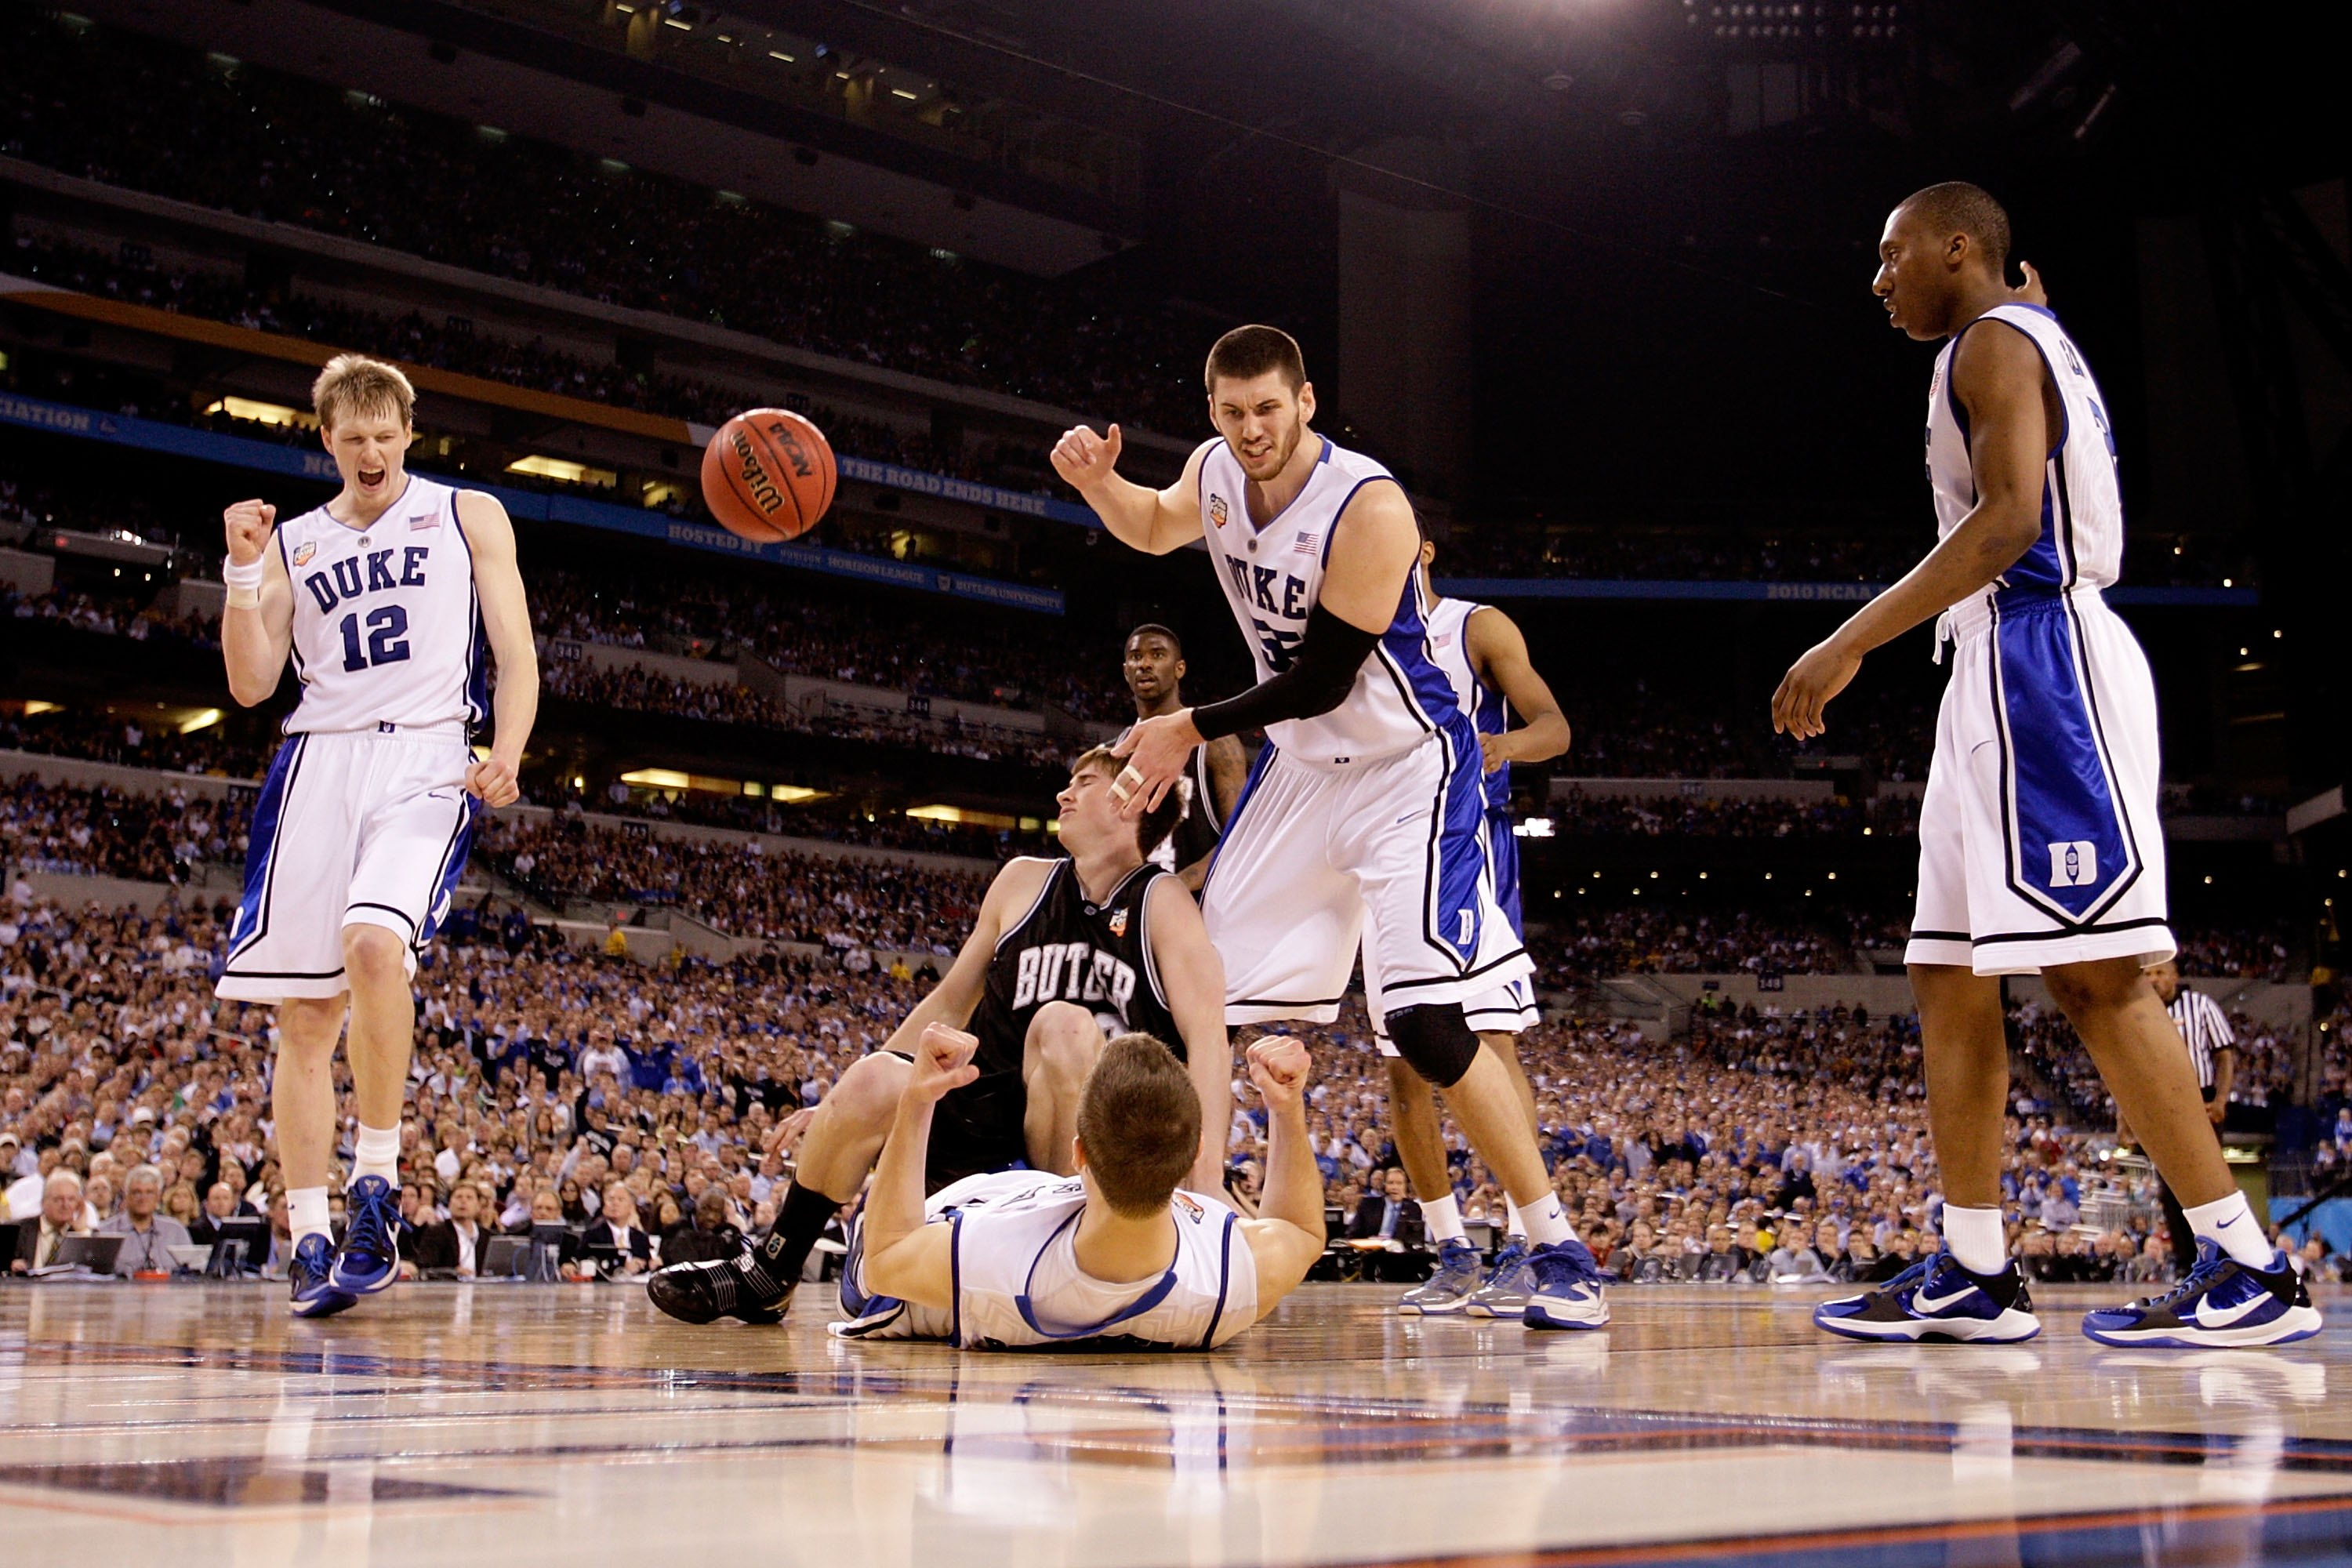 INDIANAPOLIS - APRIL 05:  (L-R) Kyle Singler #12, Jon Scheyer #30, Brian Zoubek #55 and Nolan Smith #2 of the Duke Blue Devils celebrate after Scheyer drew a charging foul against Gordon Hayward #20 of the Butler Bulldogs during the 2010 NCAA Division I M